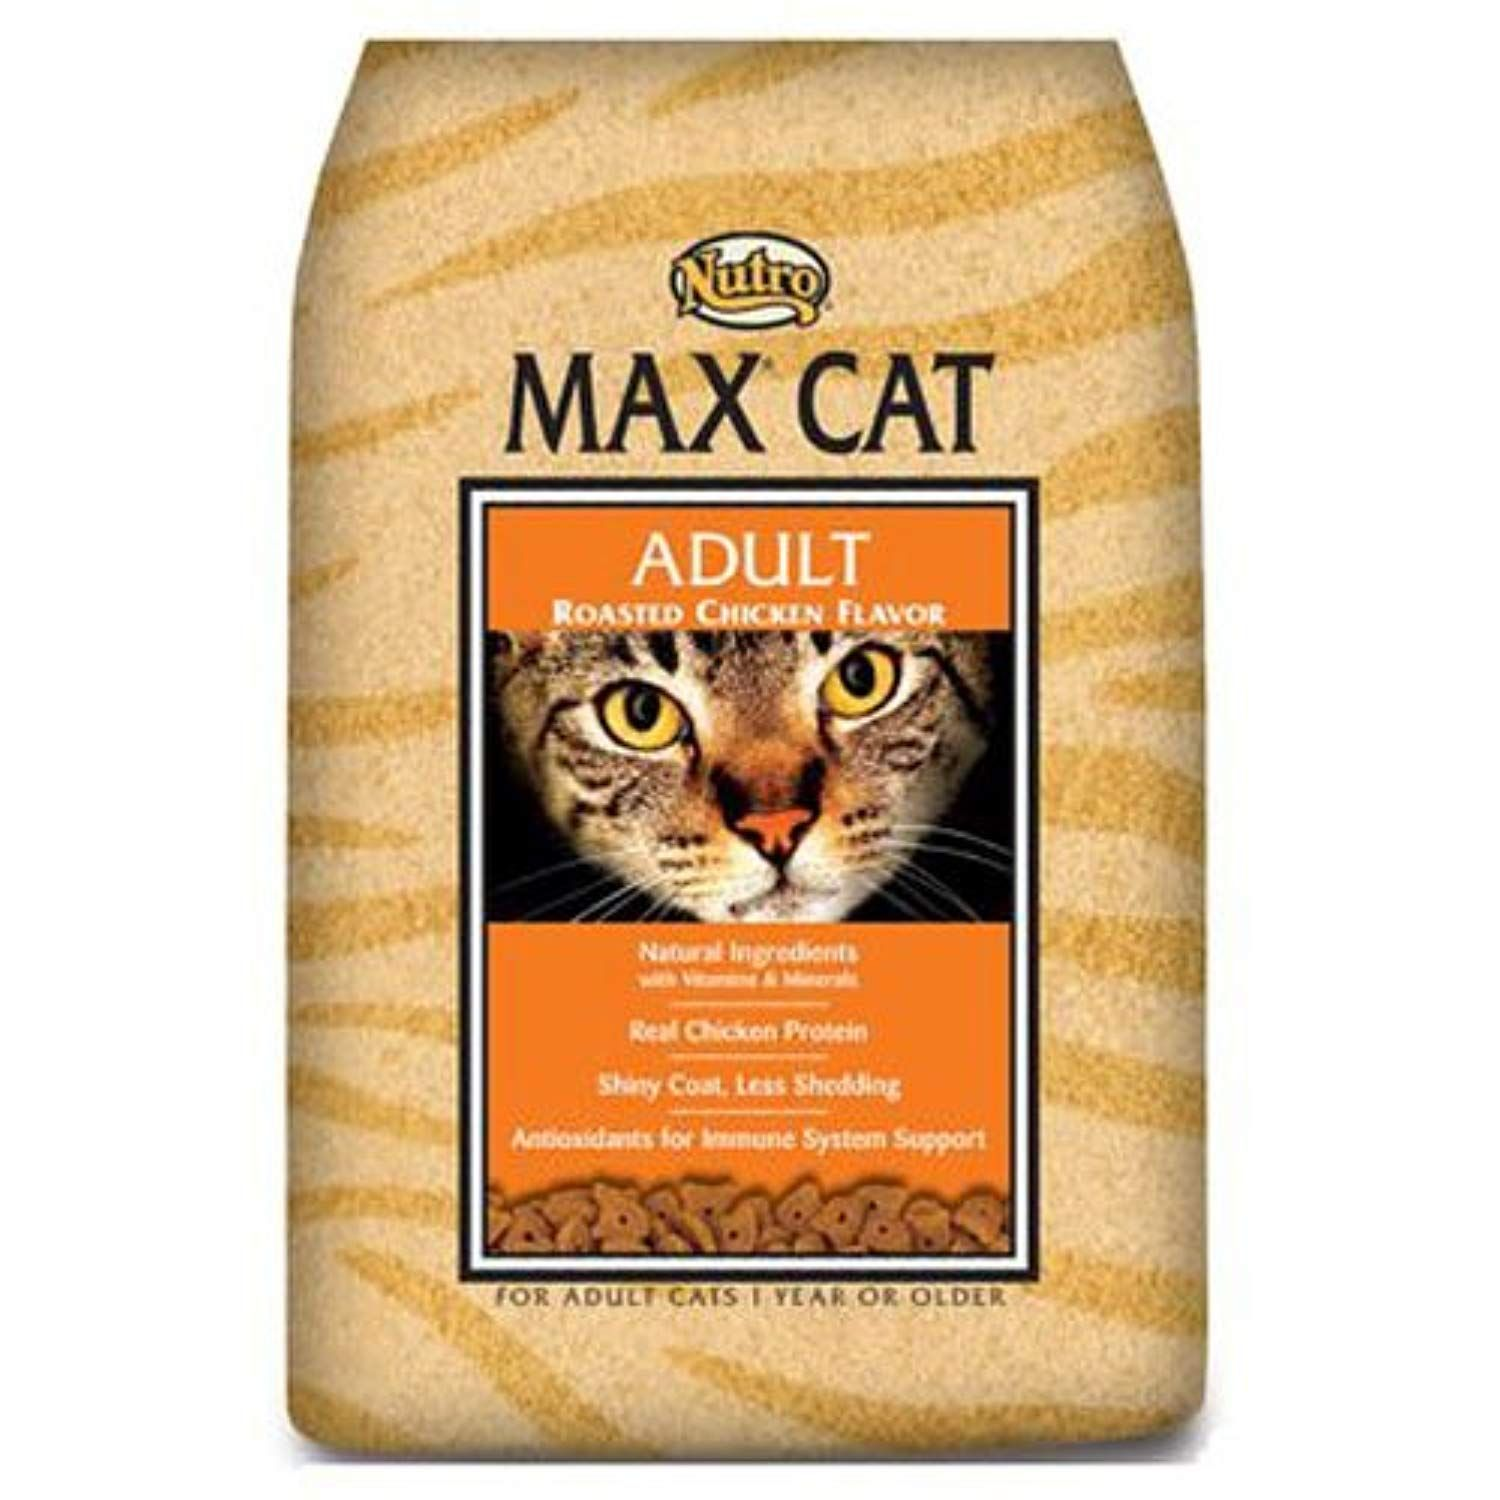 Nutro MAX CAT Adult Dry Cat Food, Roasted Chicken, (1) 6